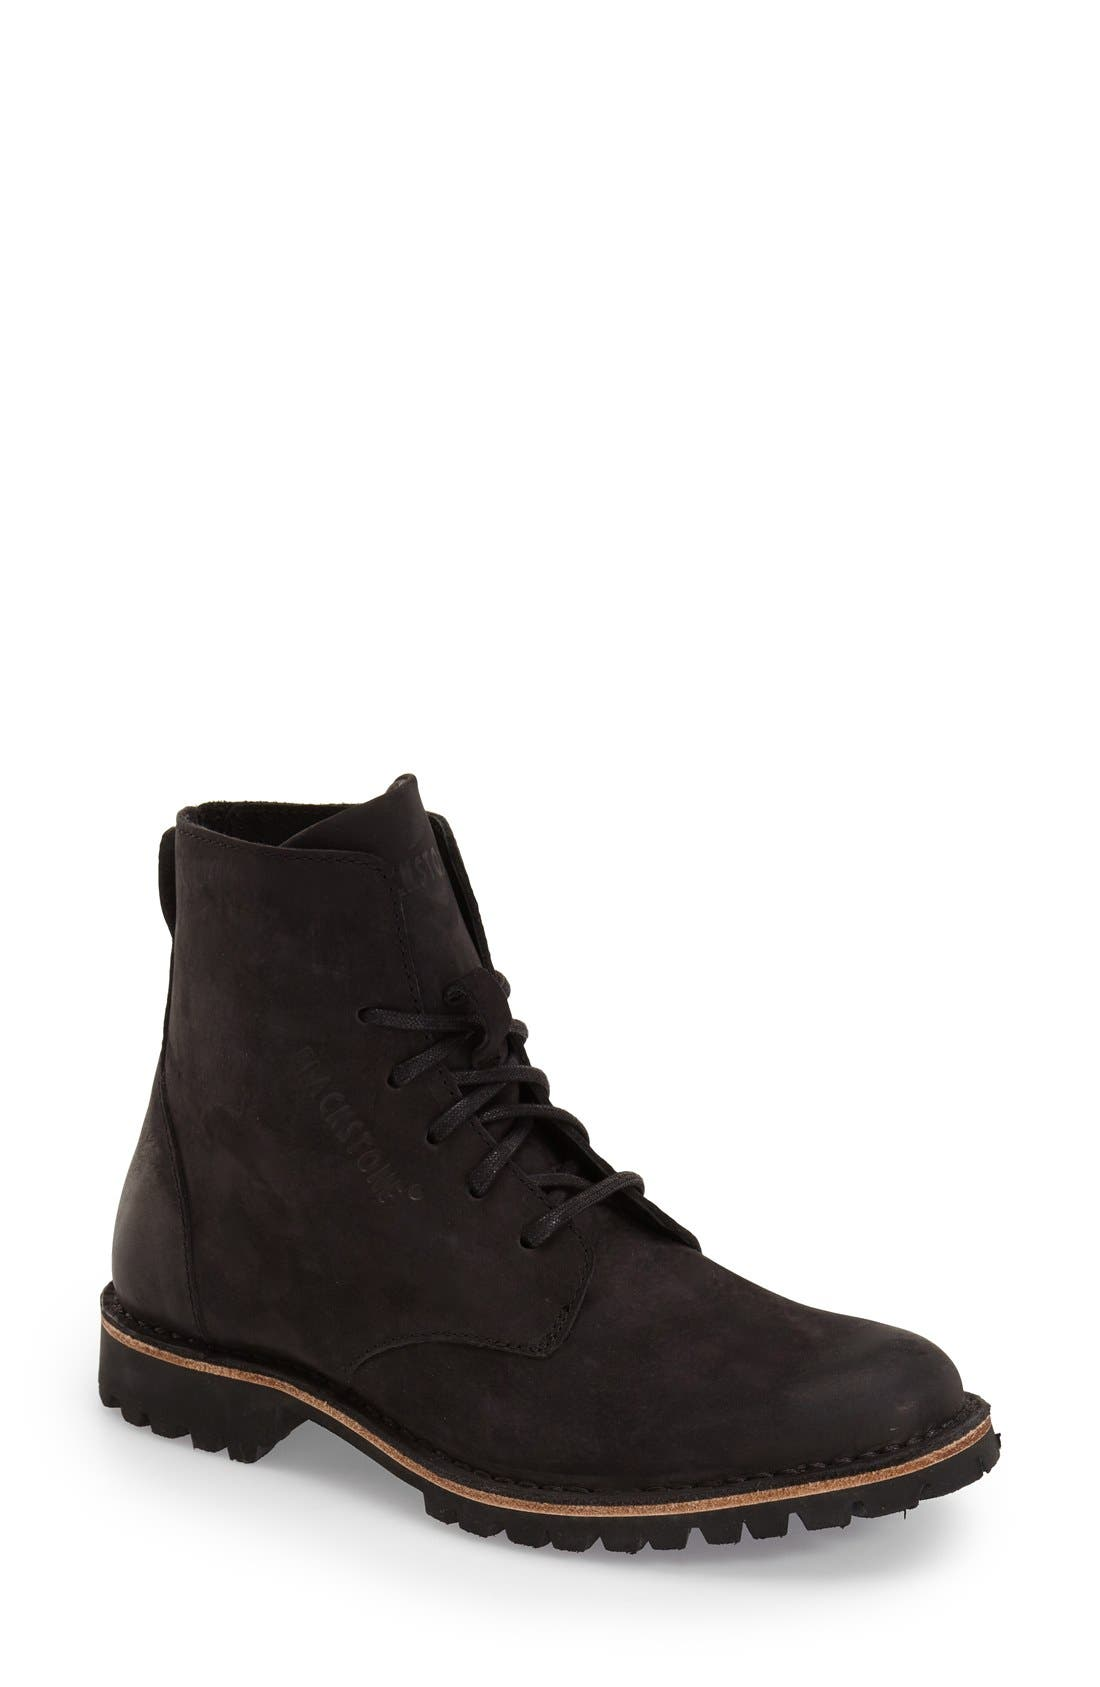 'KL67' Lace-Up Boot,                         Main,                         color, Black Leather